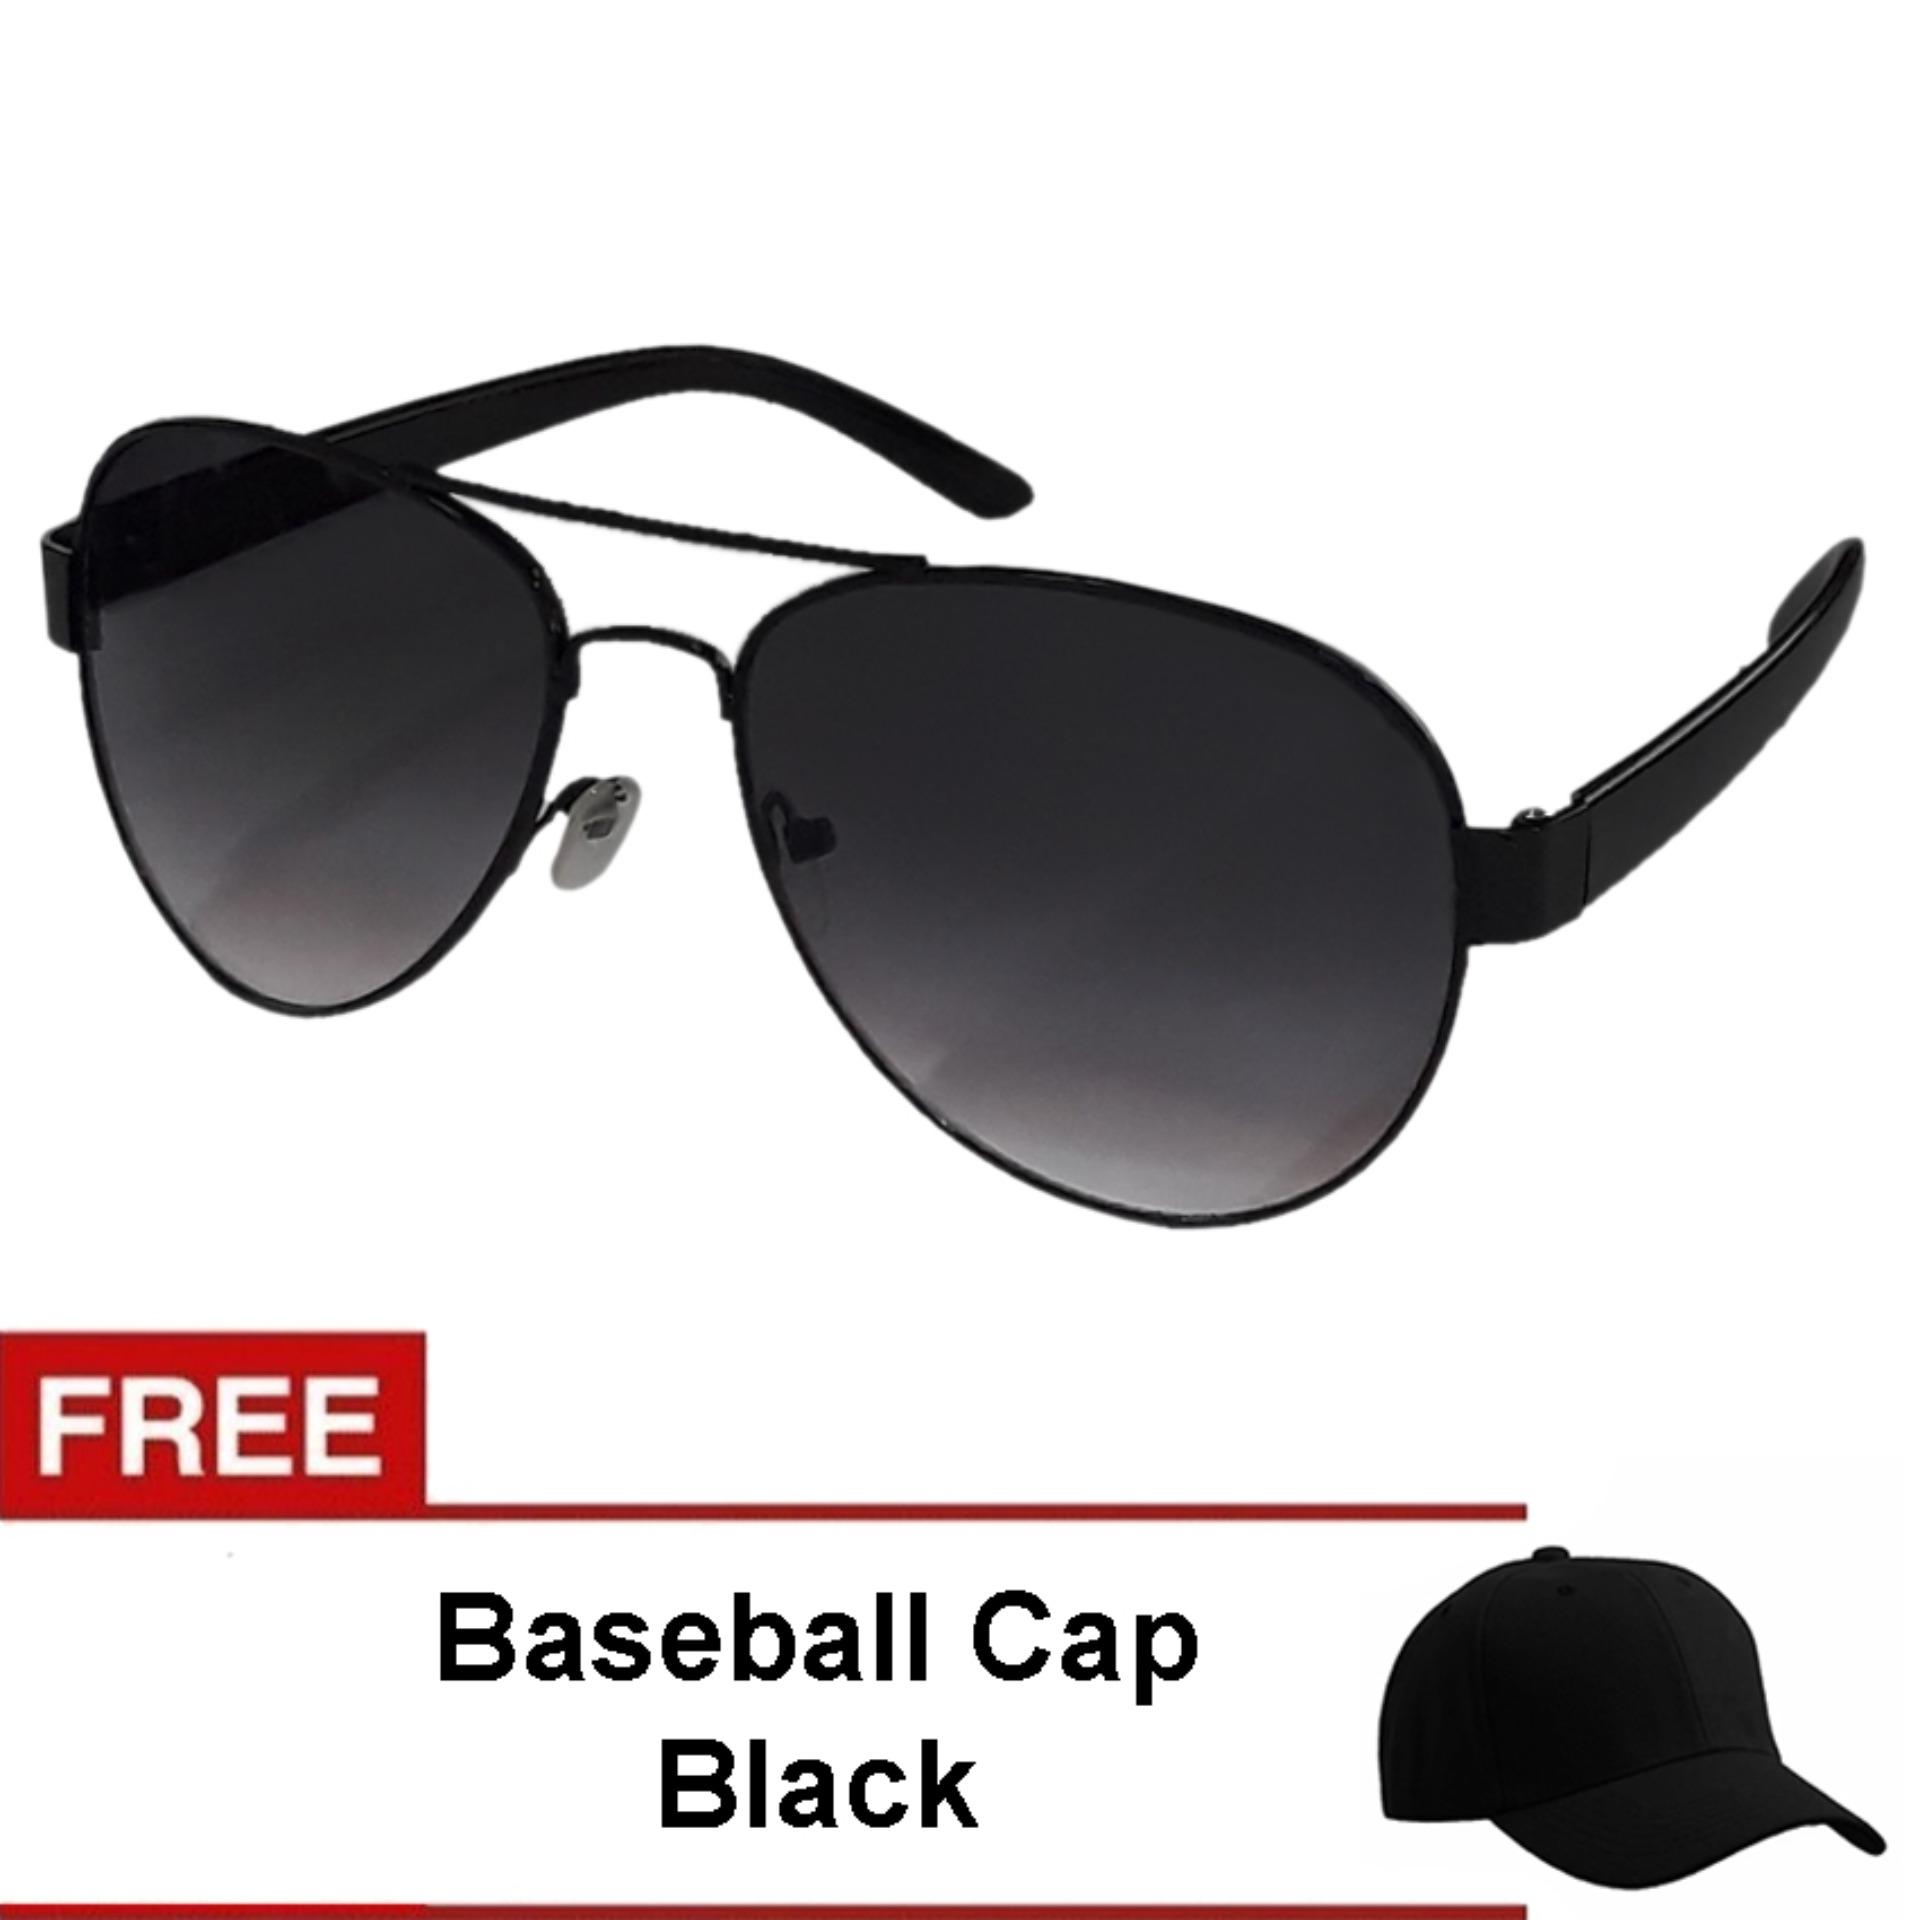 ce04e374c2 Mens Pilot Aviator Sunglasses UV 400 Protection Shades Free Baseball Cap  Black